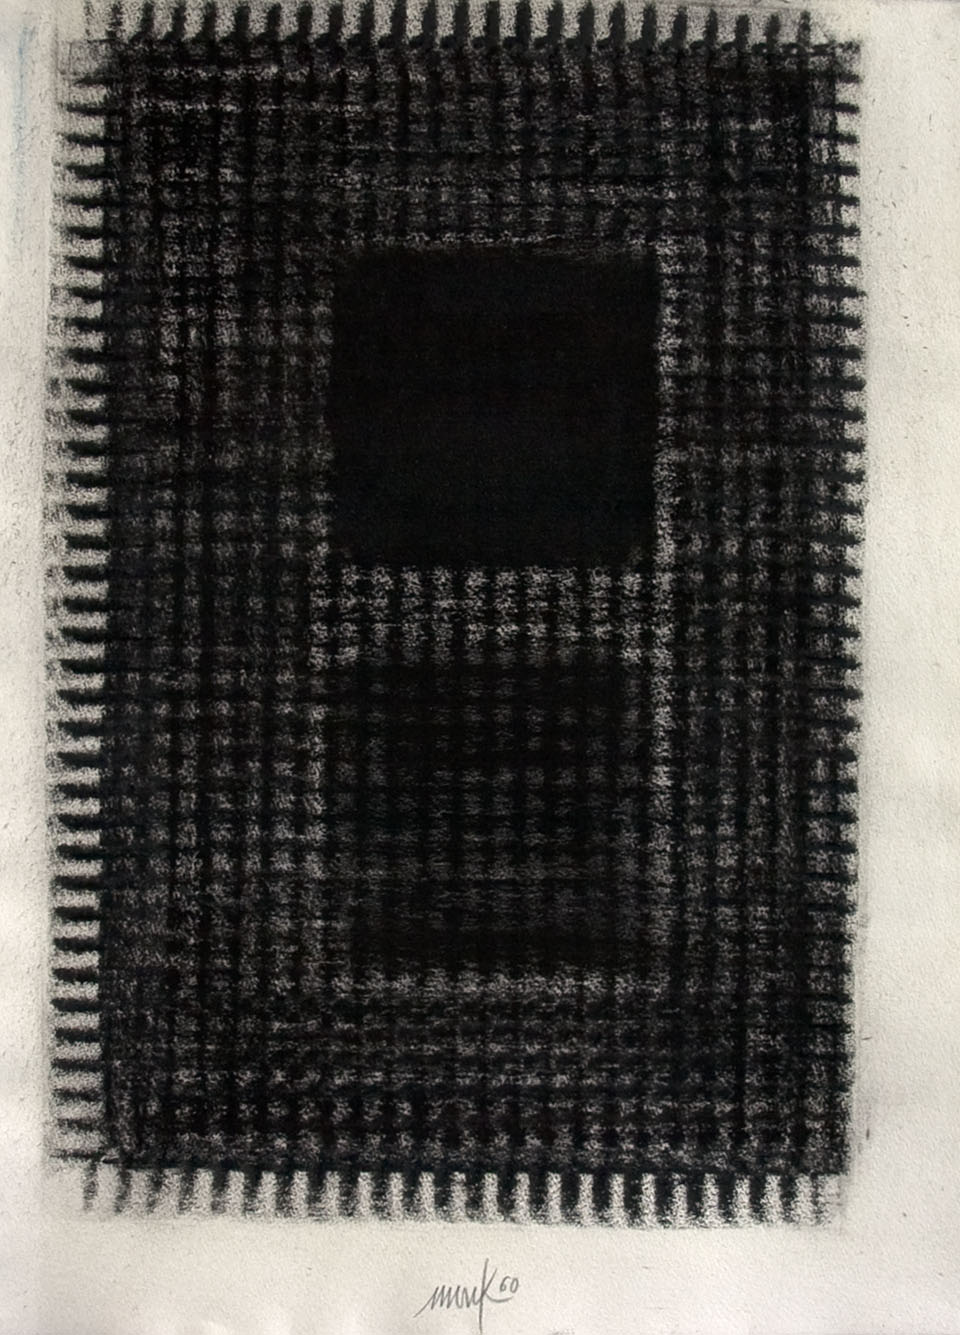 Heinz Mack, Ohne Titel, 1960, Collection ZERO foundation, Düsseldorf